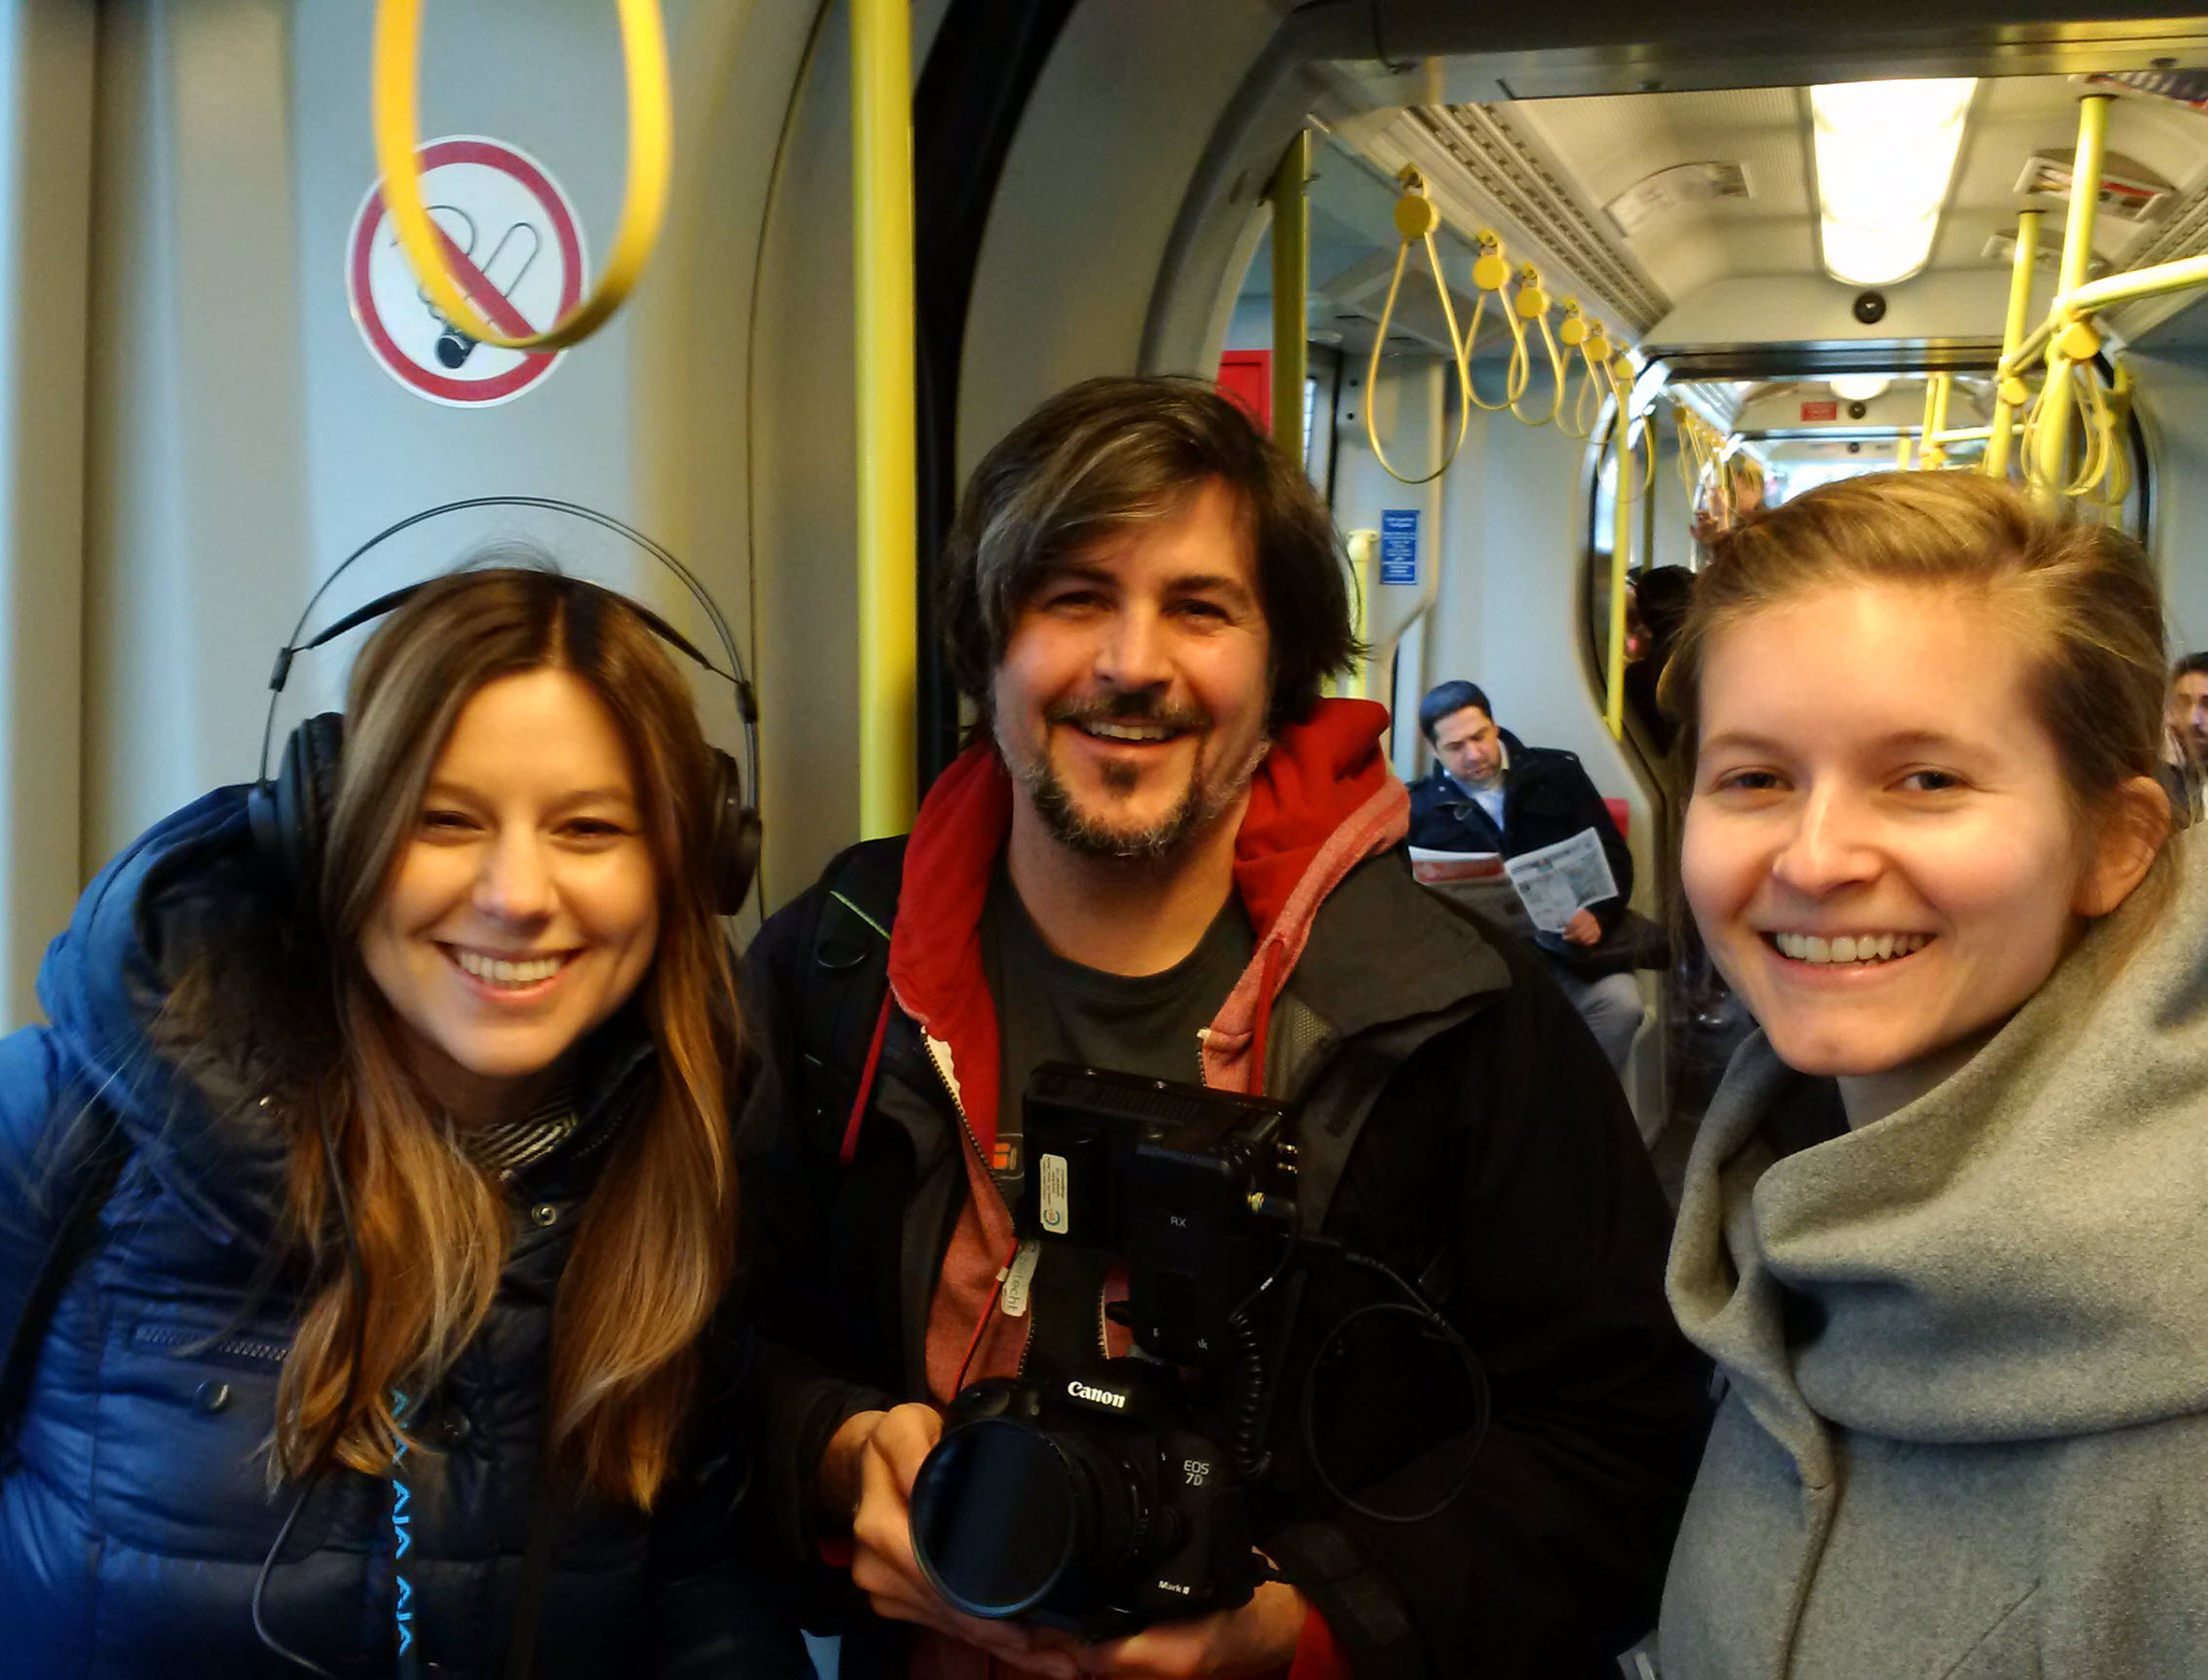 Three people smile at the camera in the tram.